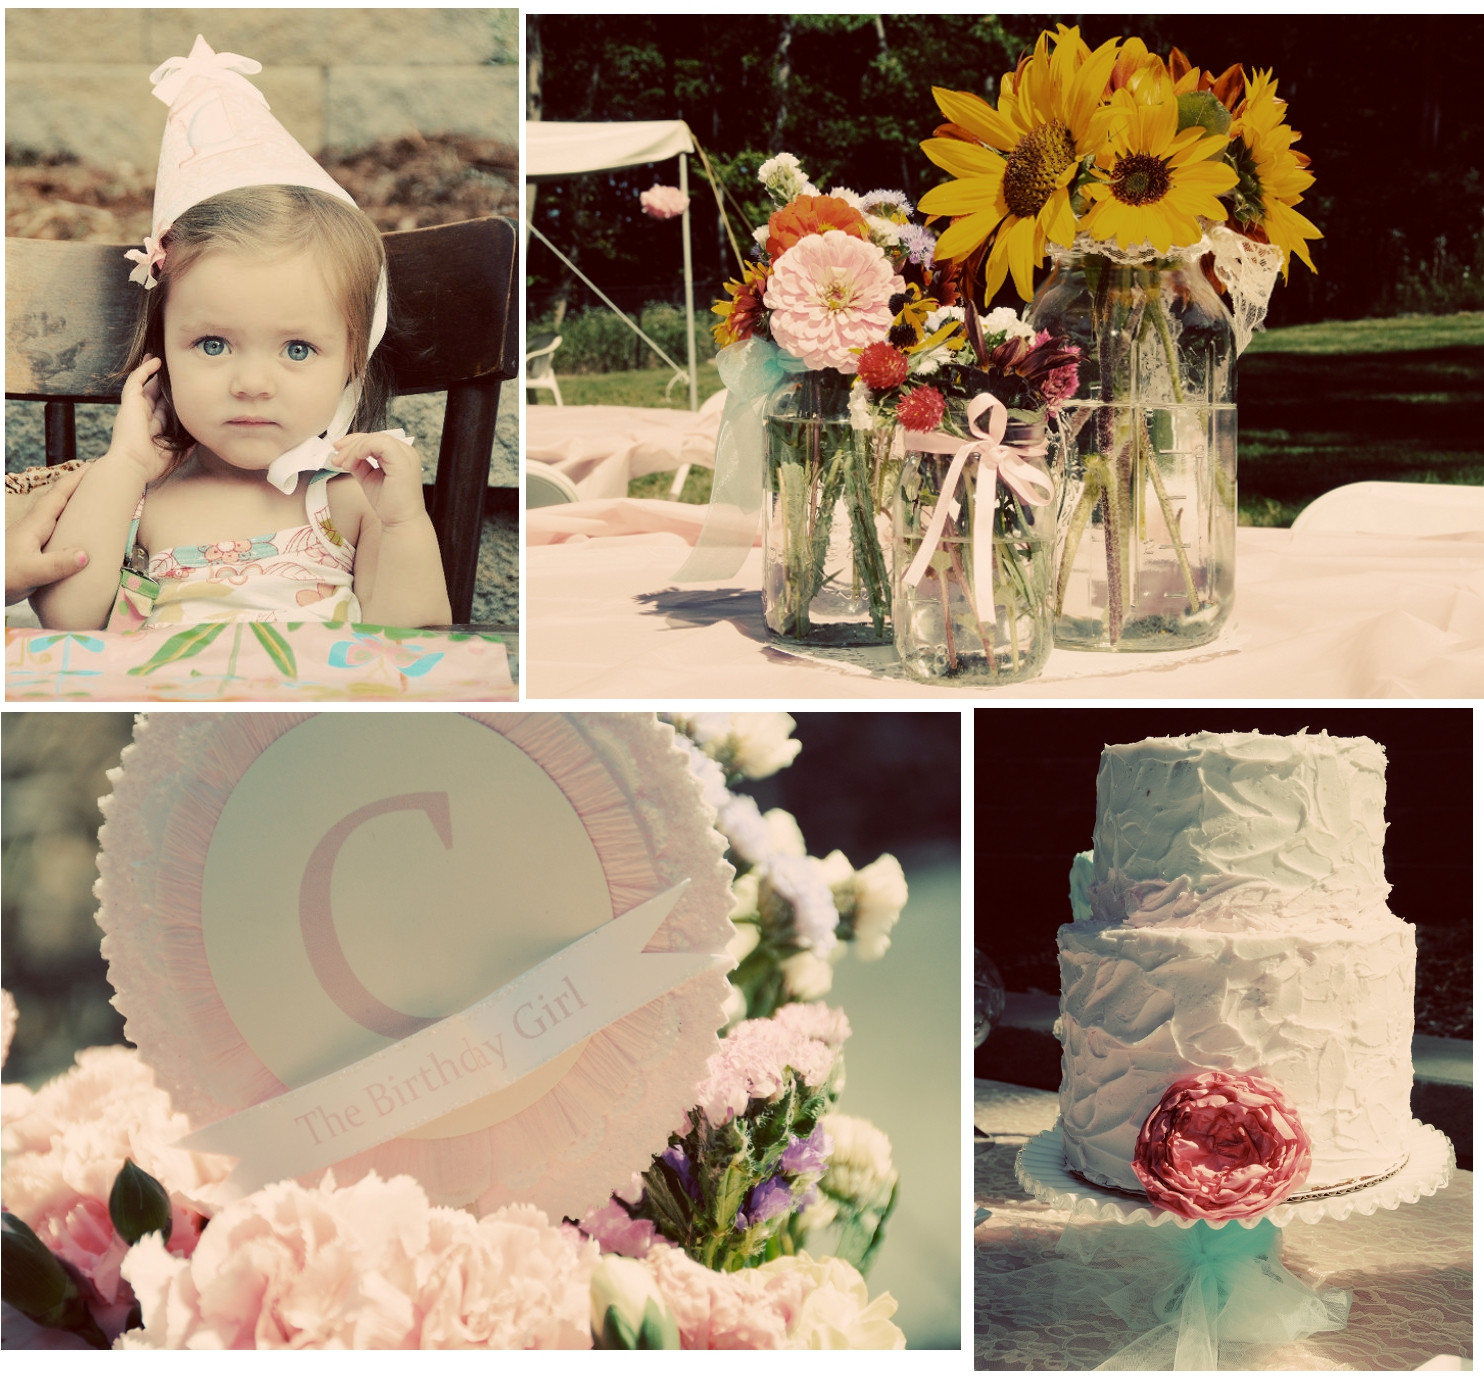 Best ideas about Vintage Birthday Party . Save or Pin Vintage Shabby Chic 1st Birthday Party Now.